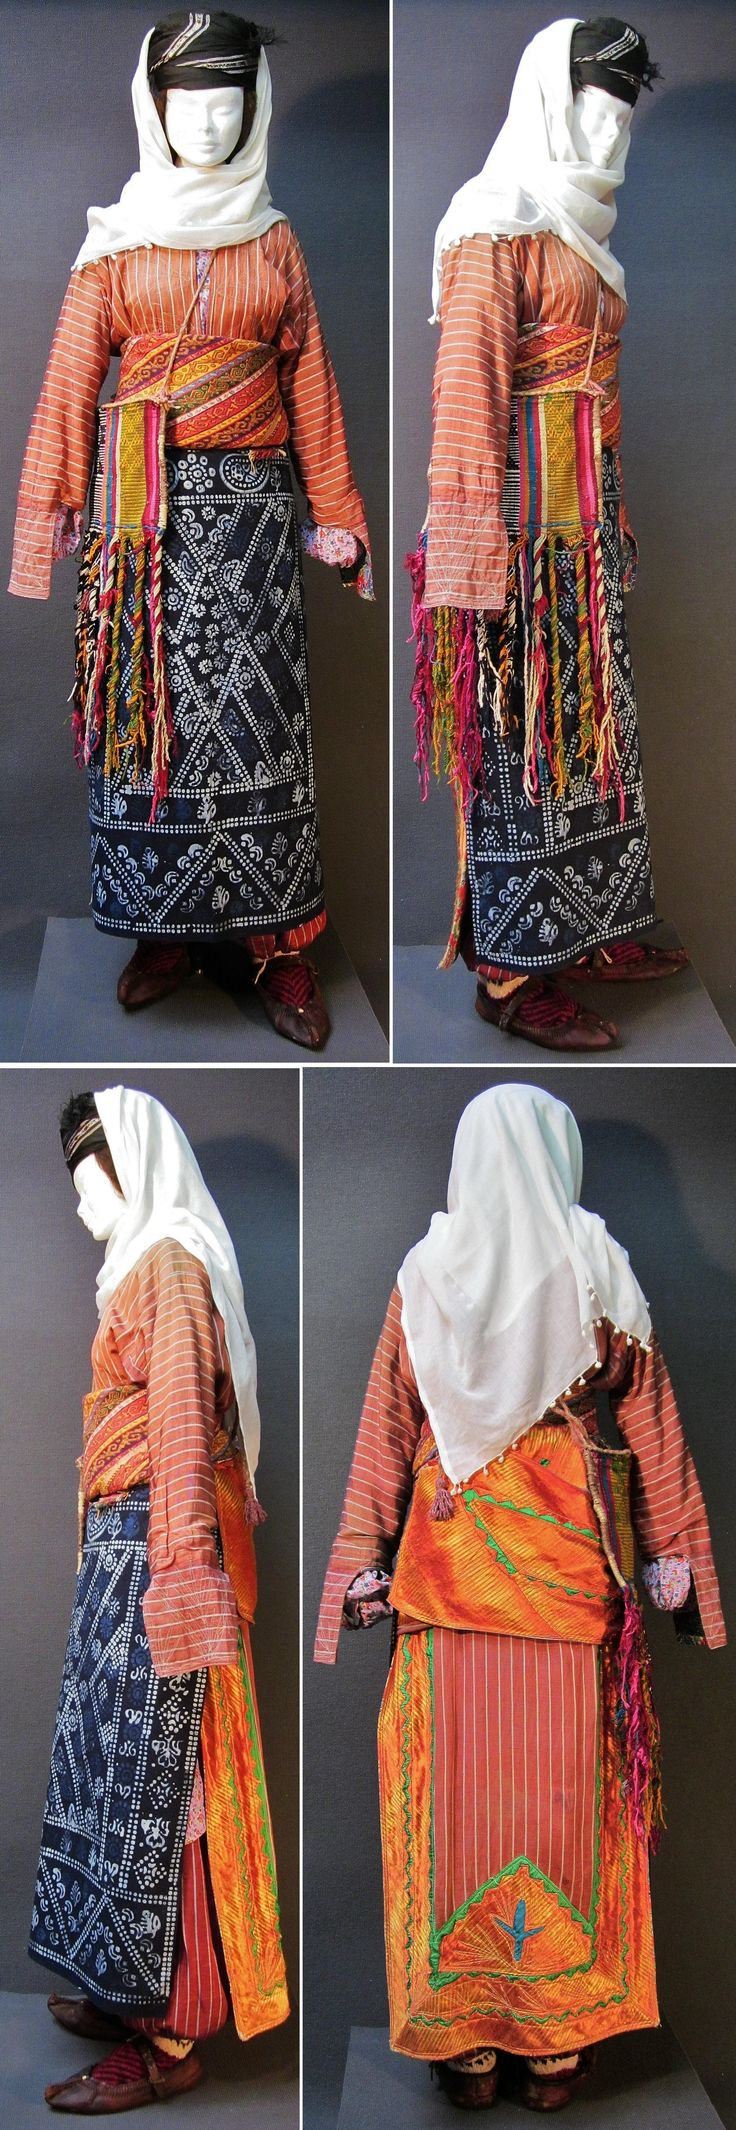 Traditional dayly outfit from the Malatya province, Kurdish (Zaza) Alevi ethnic group, mid-20th century.  With an ikat silk 'deyre' (an üçetek with front panels decorated on the inside – a garment which is characteristic of Alevi people).  (Kavak Costume Collection - Antwerpen/Belgium).